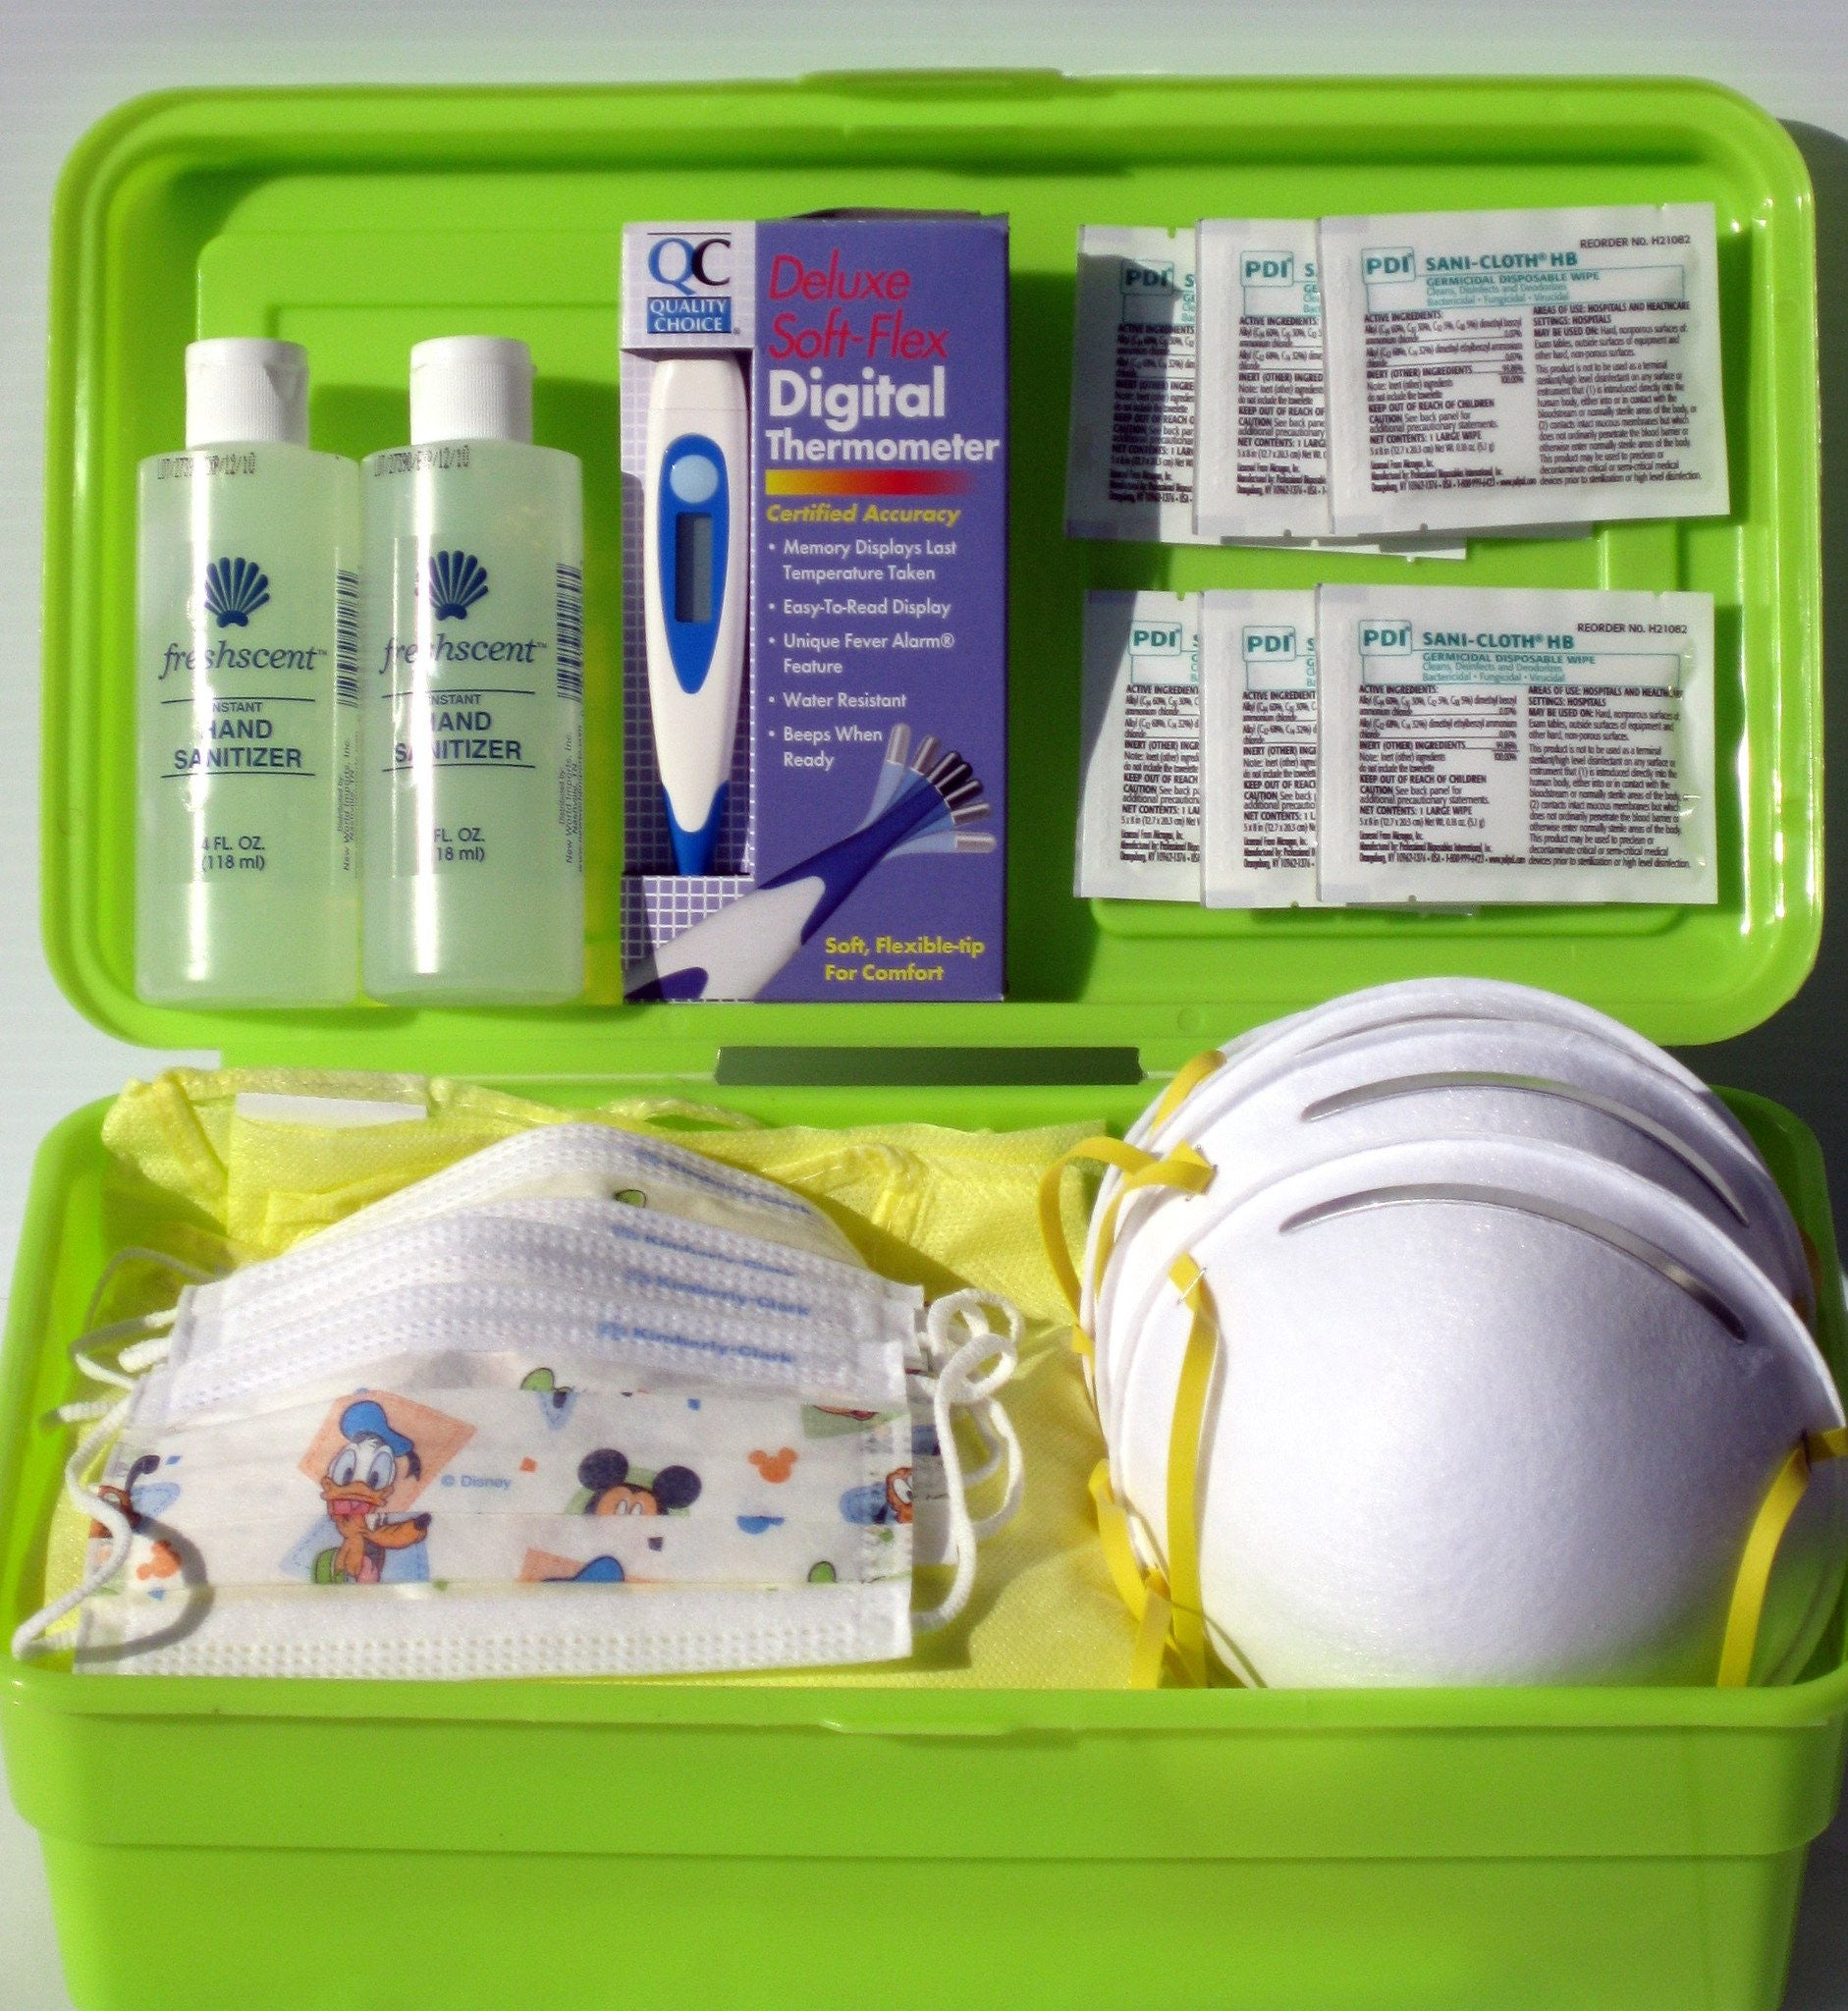 Buy Pandemic Swine Flu Family Protection Kit with Childrens Masks with Coupon Code from Mountainside Medical Equipment Sale - Mountainside Medical Equipment